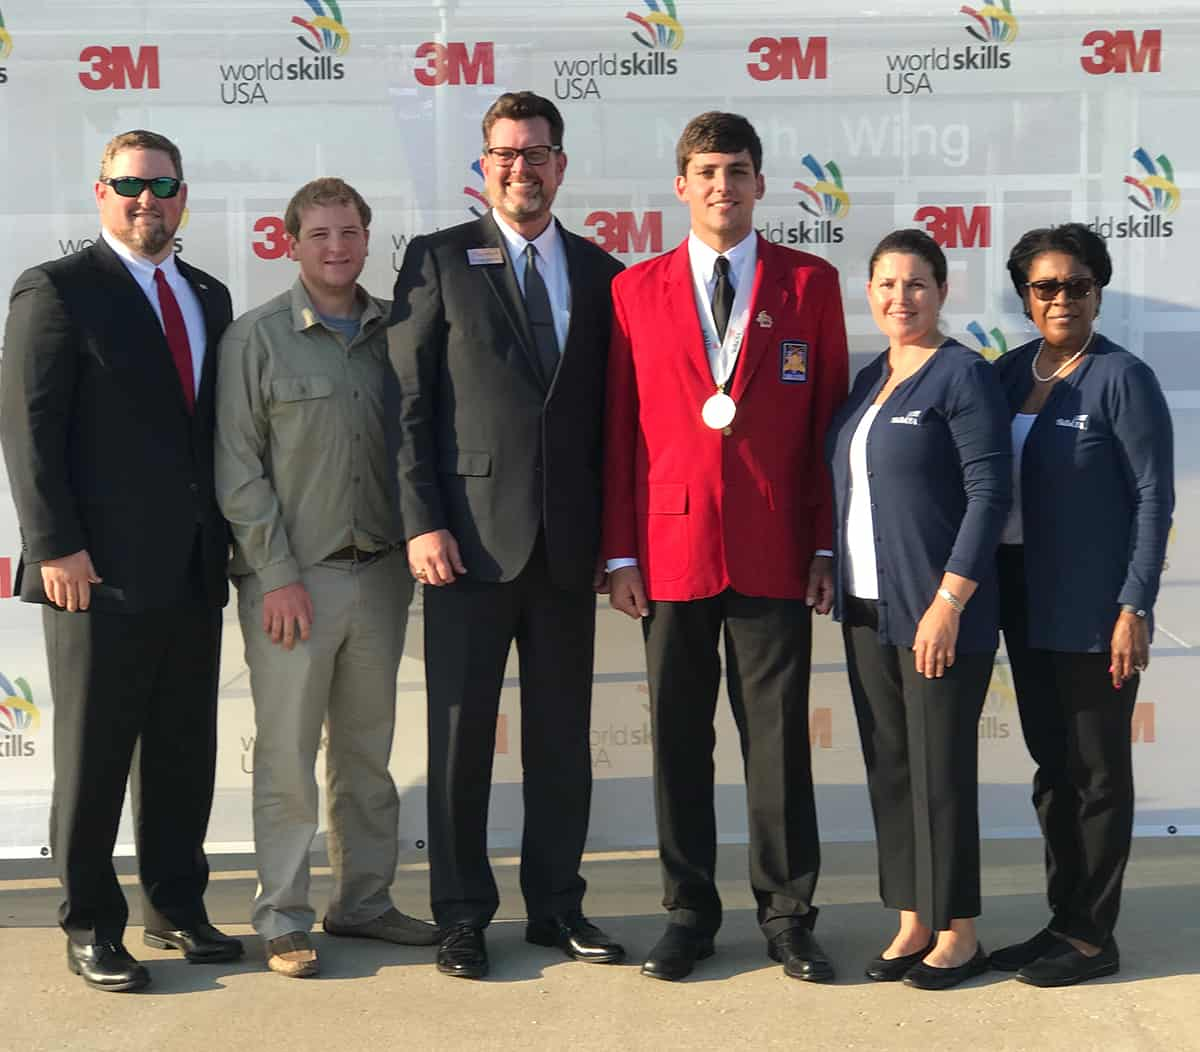 The South Georgia Technical College team stands together outside of the SkillsUSA Leadership and Skills Conference following the medal ceremony. Left to right: Chad Brown (advisor), Jacob Grant (student), SGTC President Dr. John Watford, Bailey Mills (student), Victoria Herron (advisor), Cynthia Carter (director, student organizations).